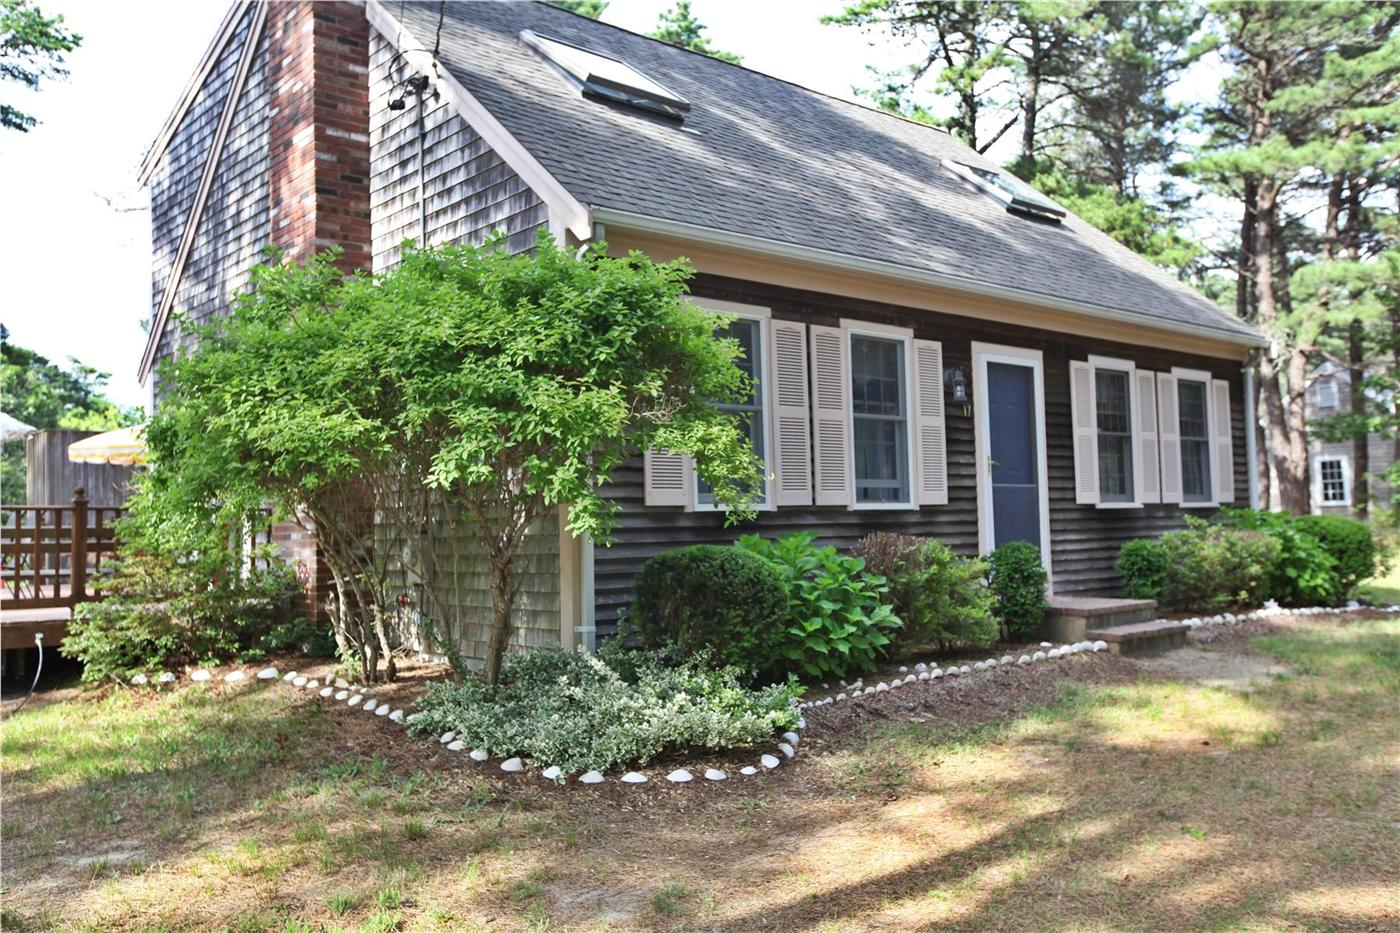 Eastham Vacation Rental Home In Cape Cod Ma 02642 Id 20509